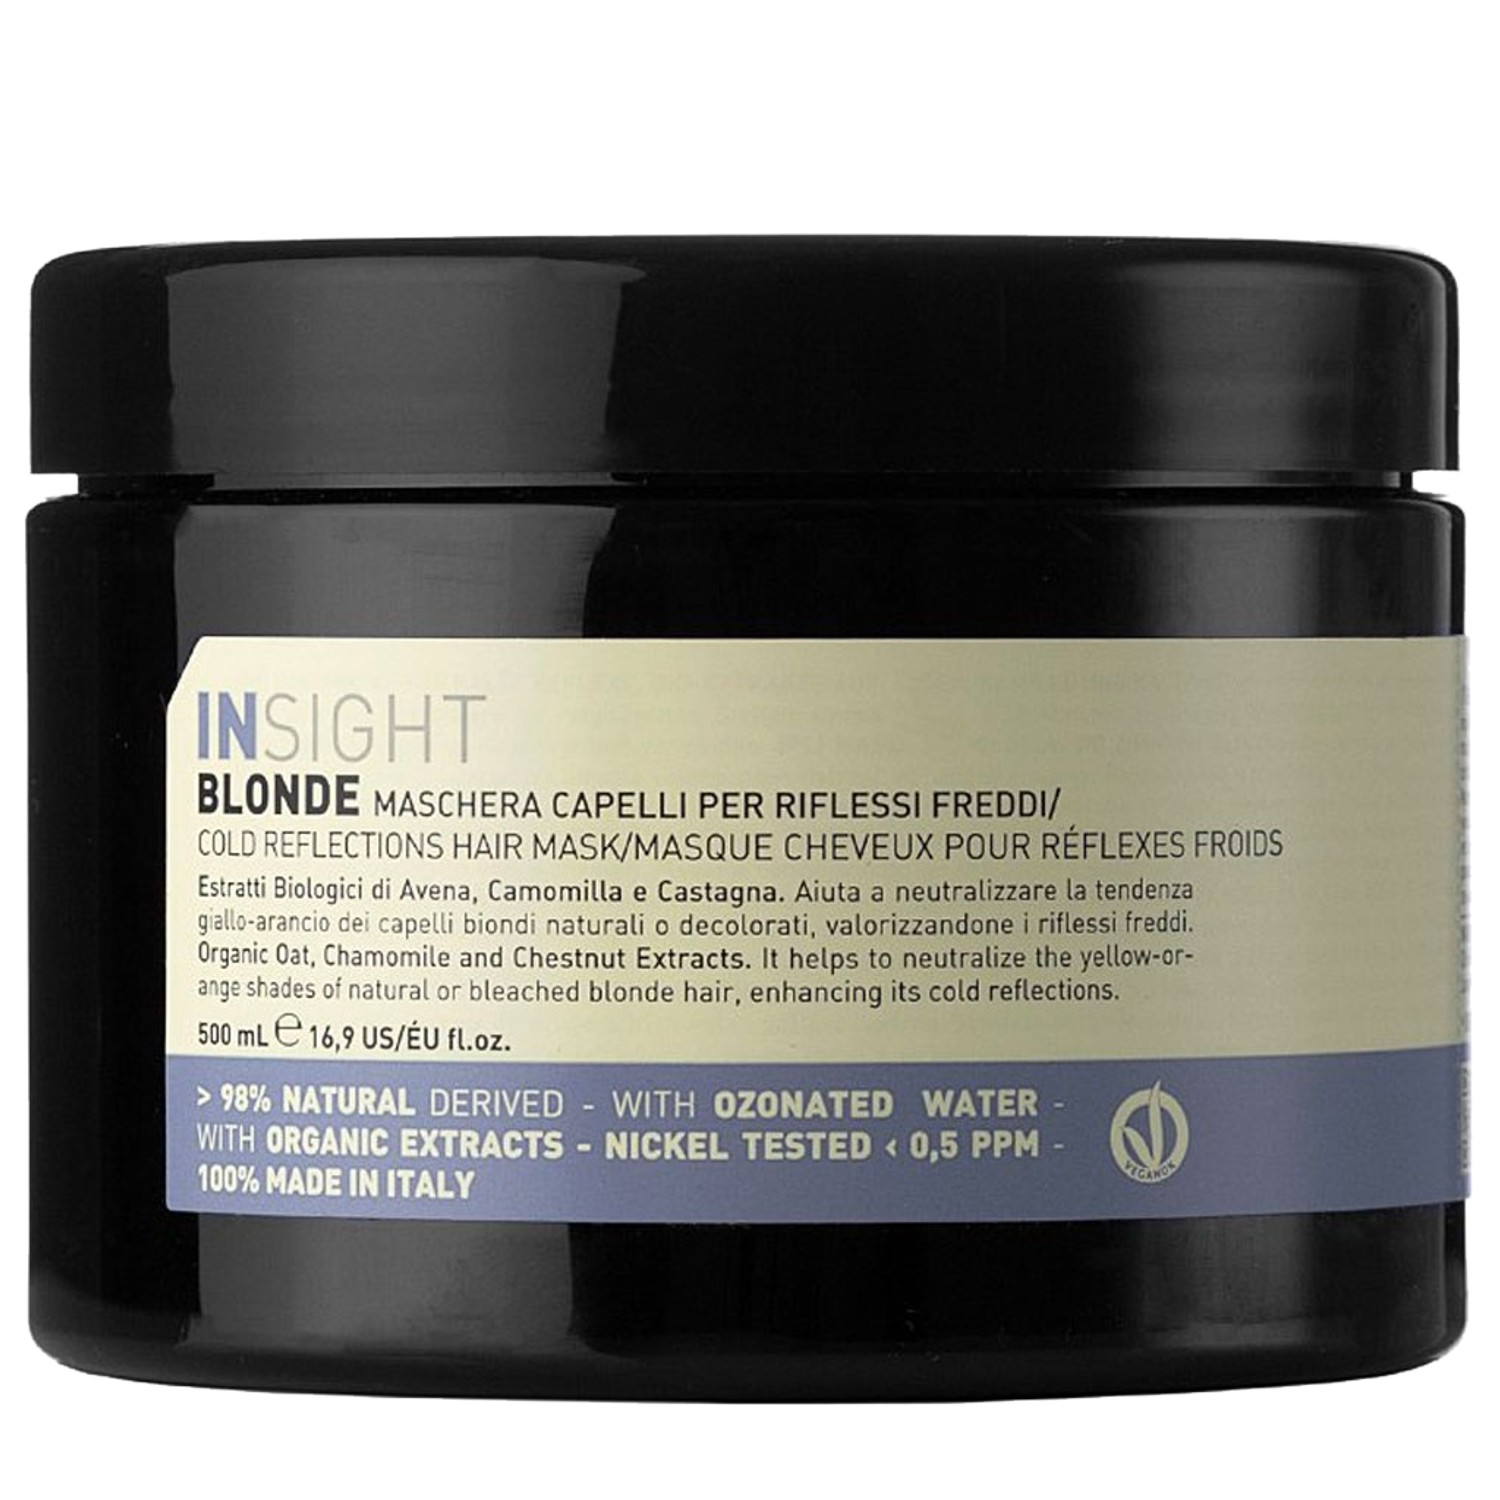 Insight BLONDE Cold Reflections Hair Mask 500 ml